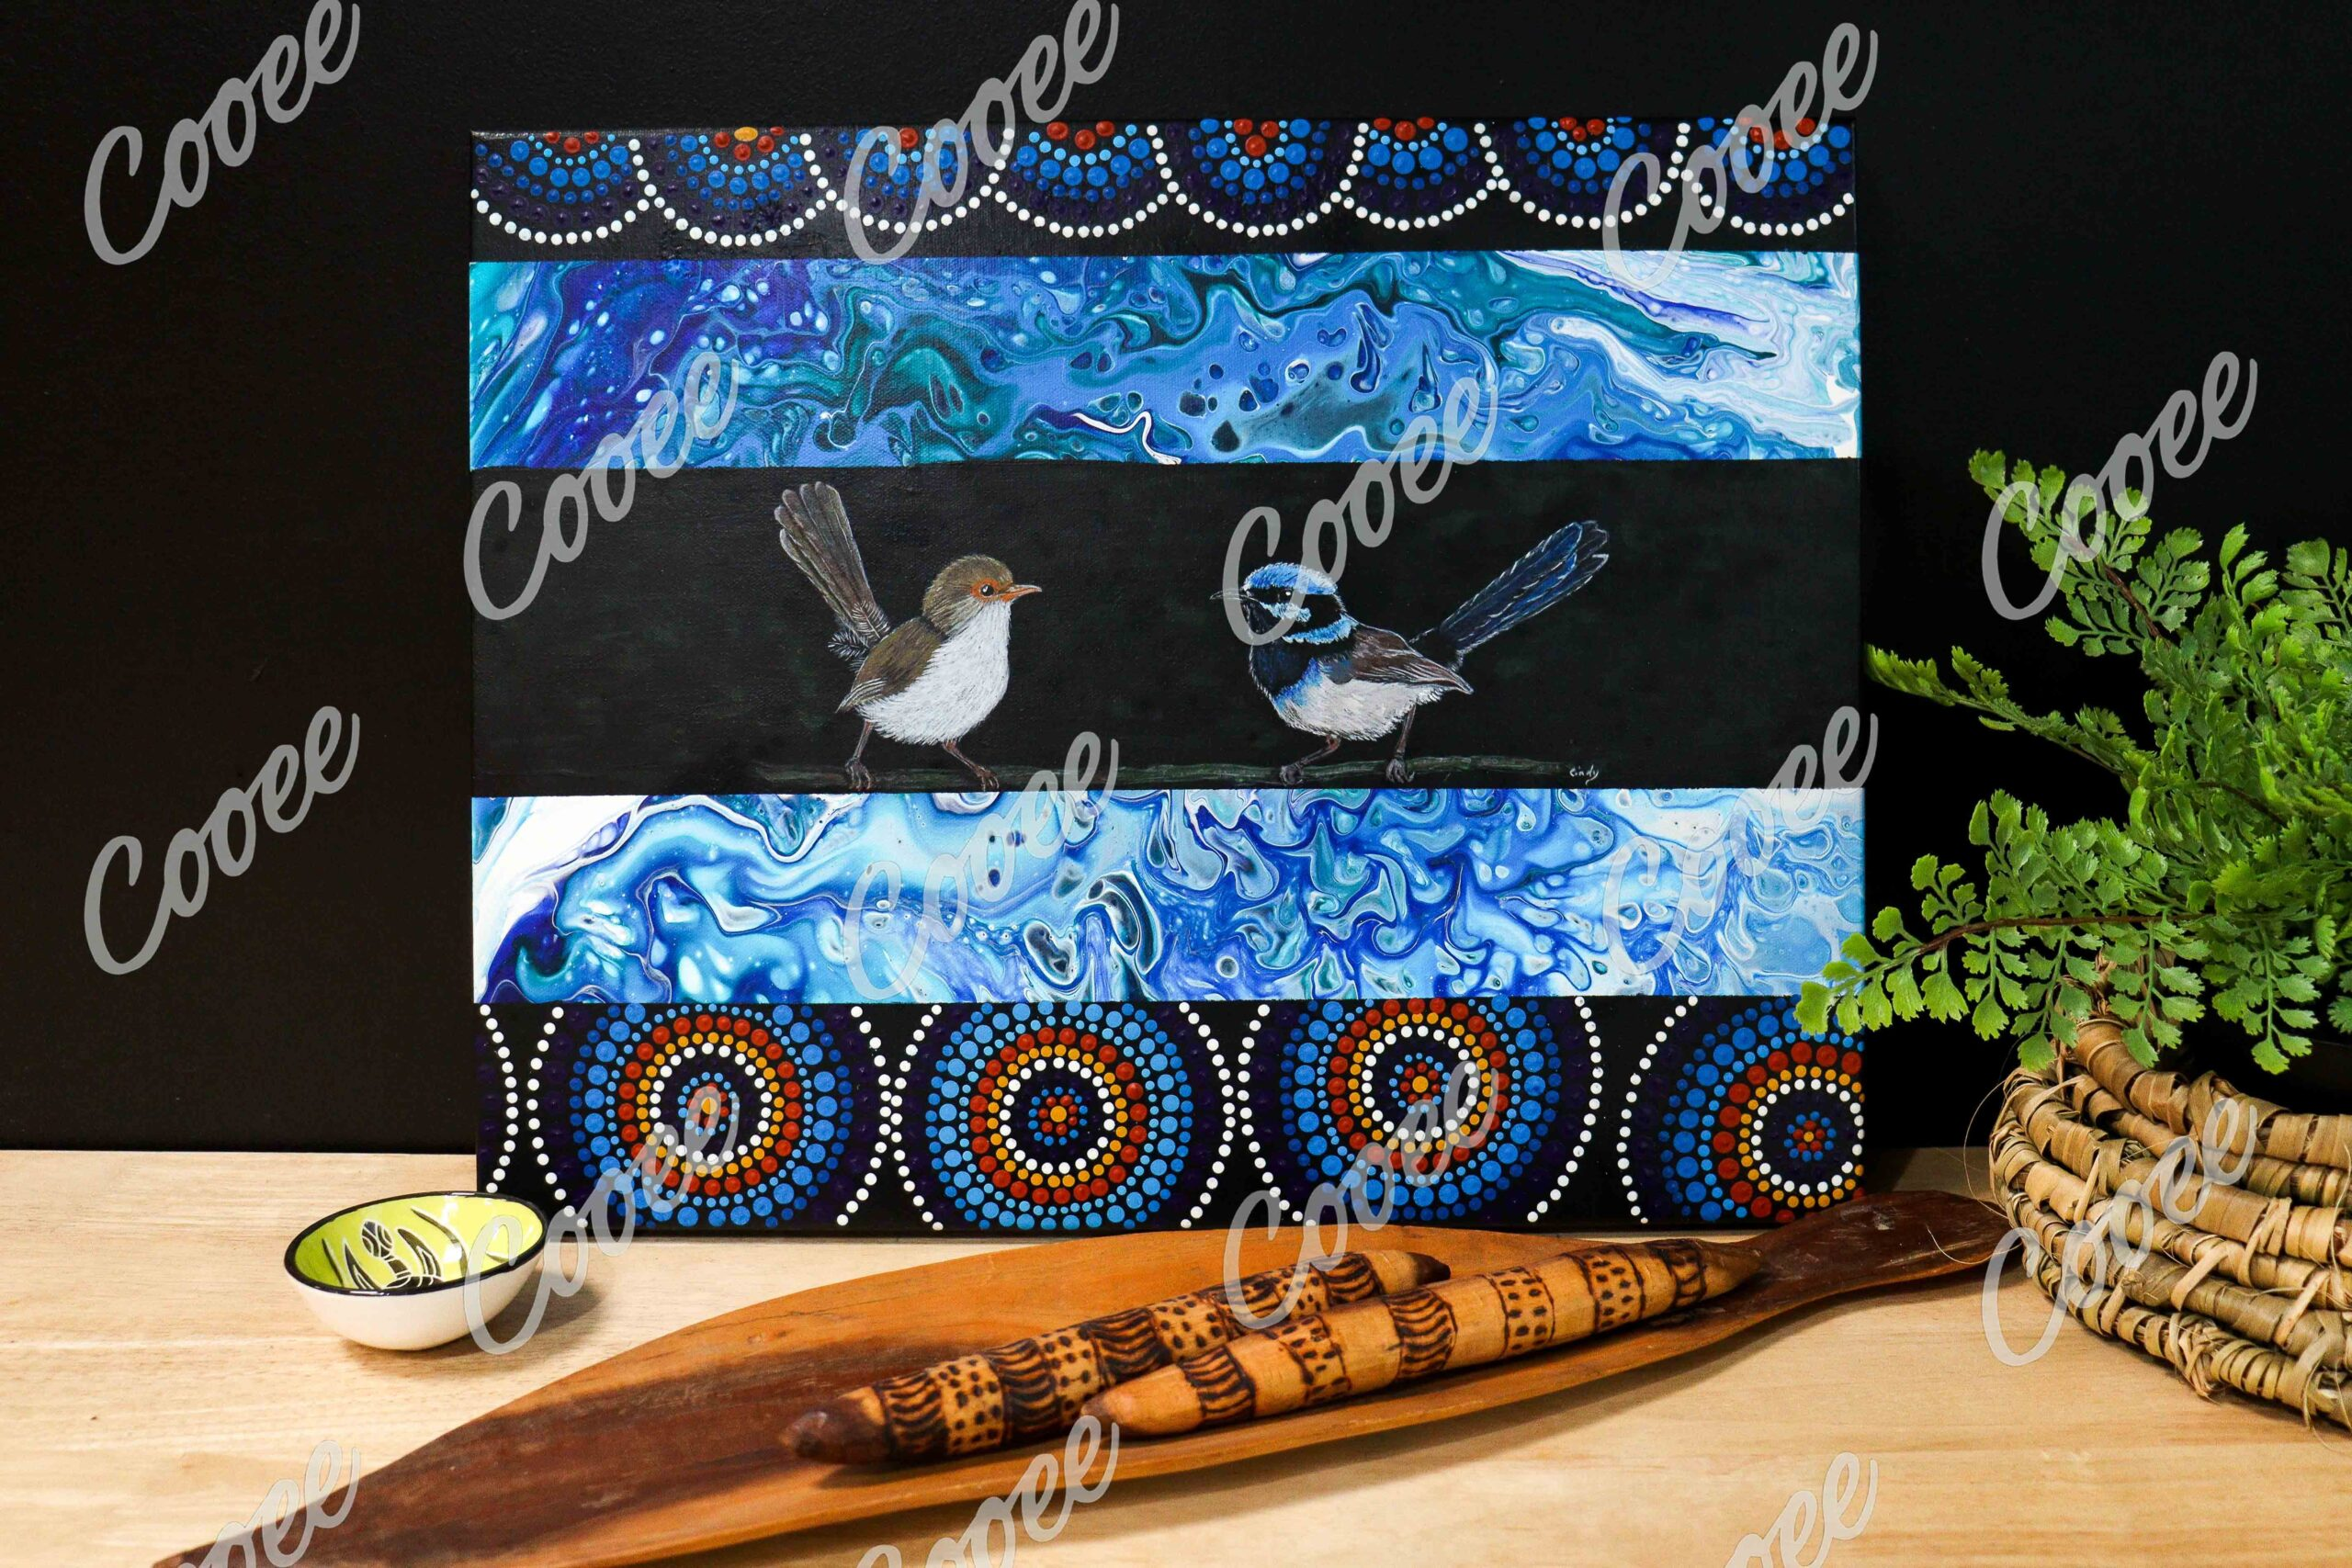 Cooee-Cafe-Original-Indigenous-Painting7